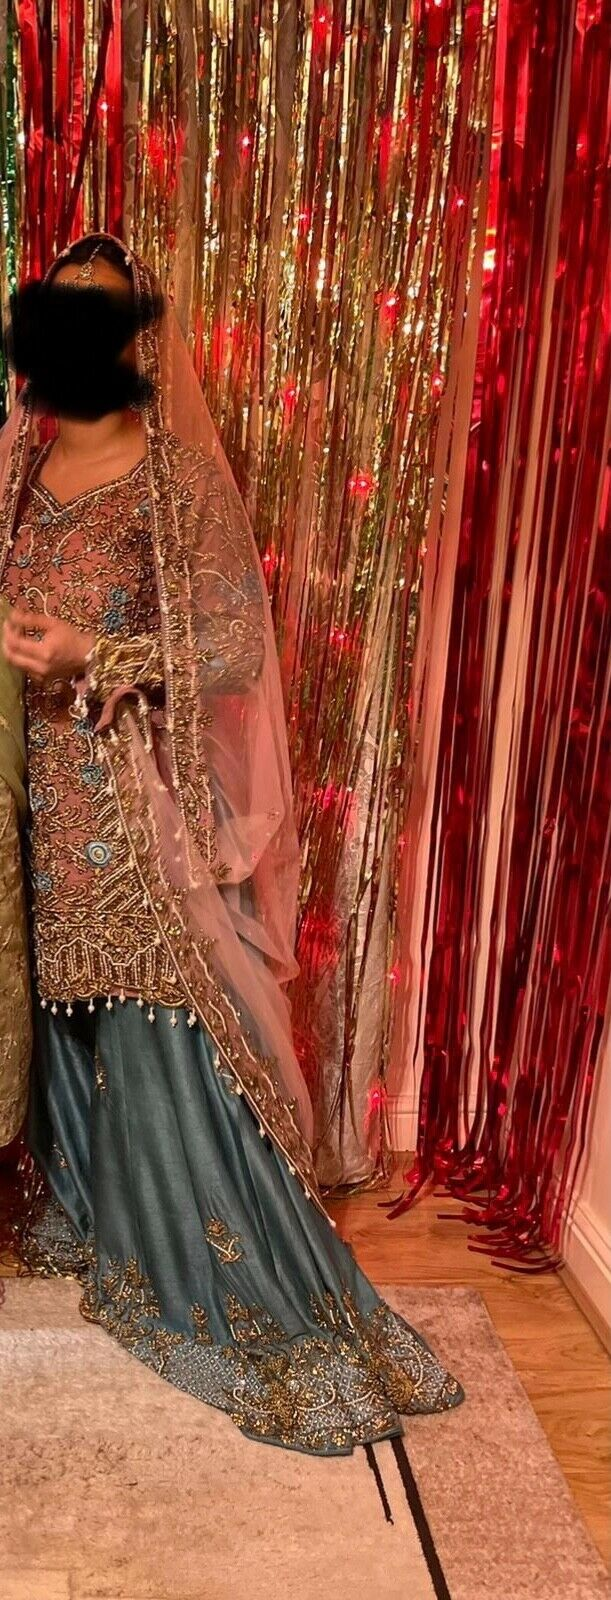 Pastel colour Heavily embellished Asian wear/mehndi bride outfit 8/10